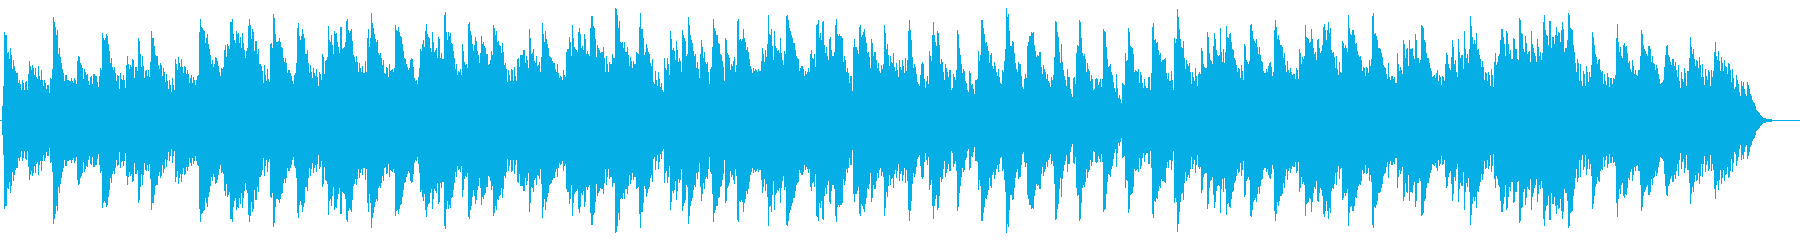 Avemaria (Guno)'s reproduced waveform